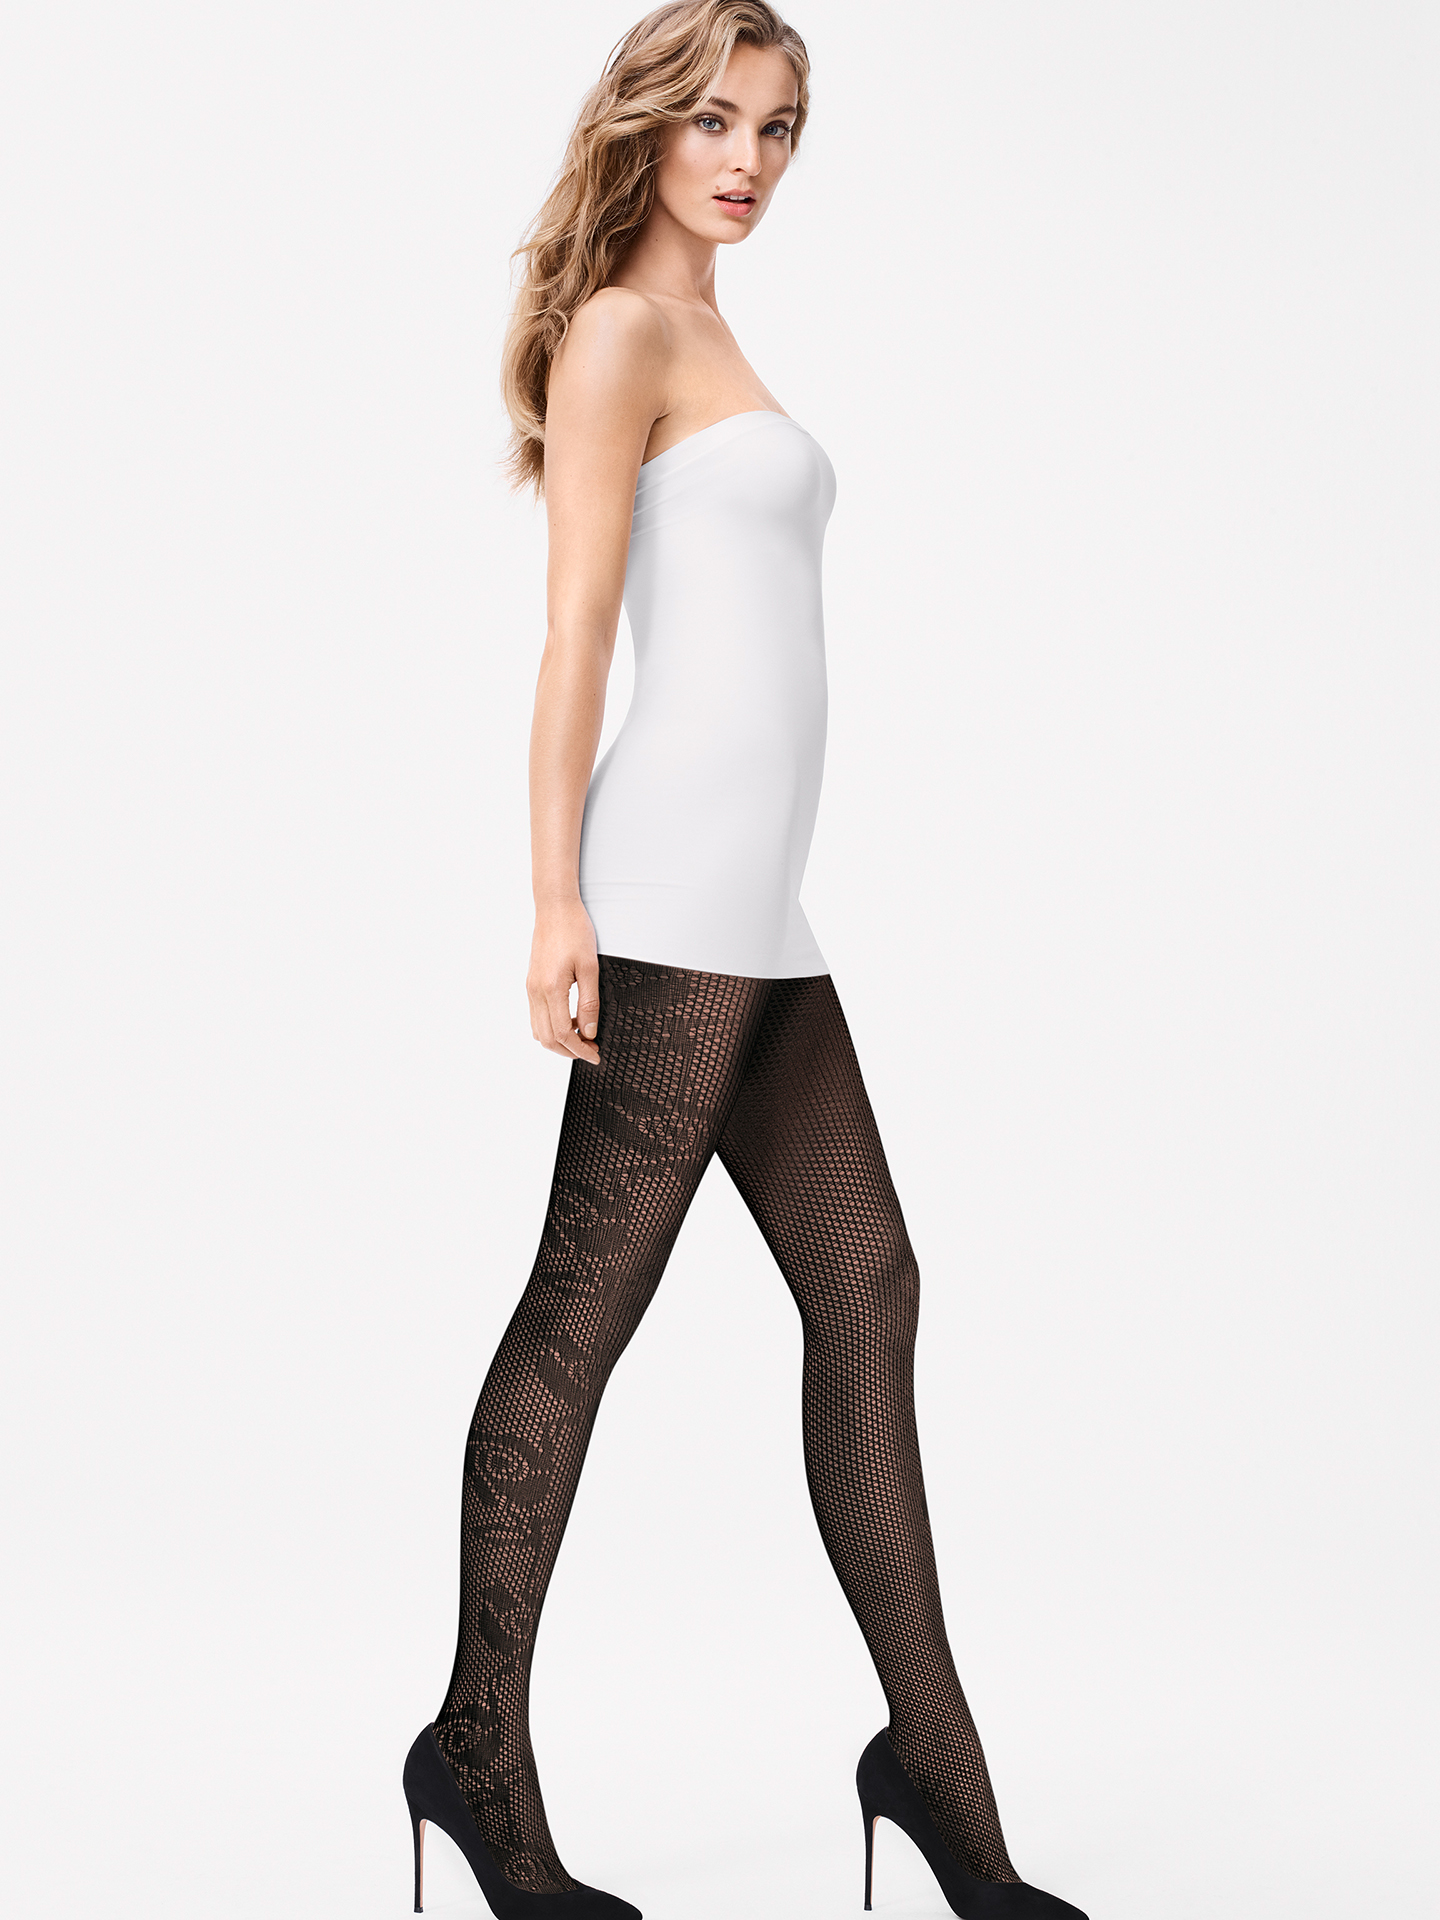 Nellie Tights - 7005 - XS | Sportbekleidung | Black | Wolford